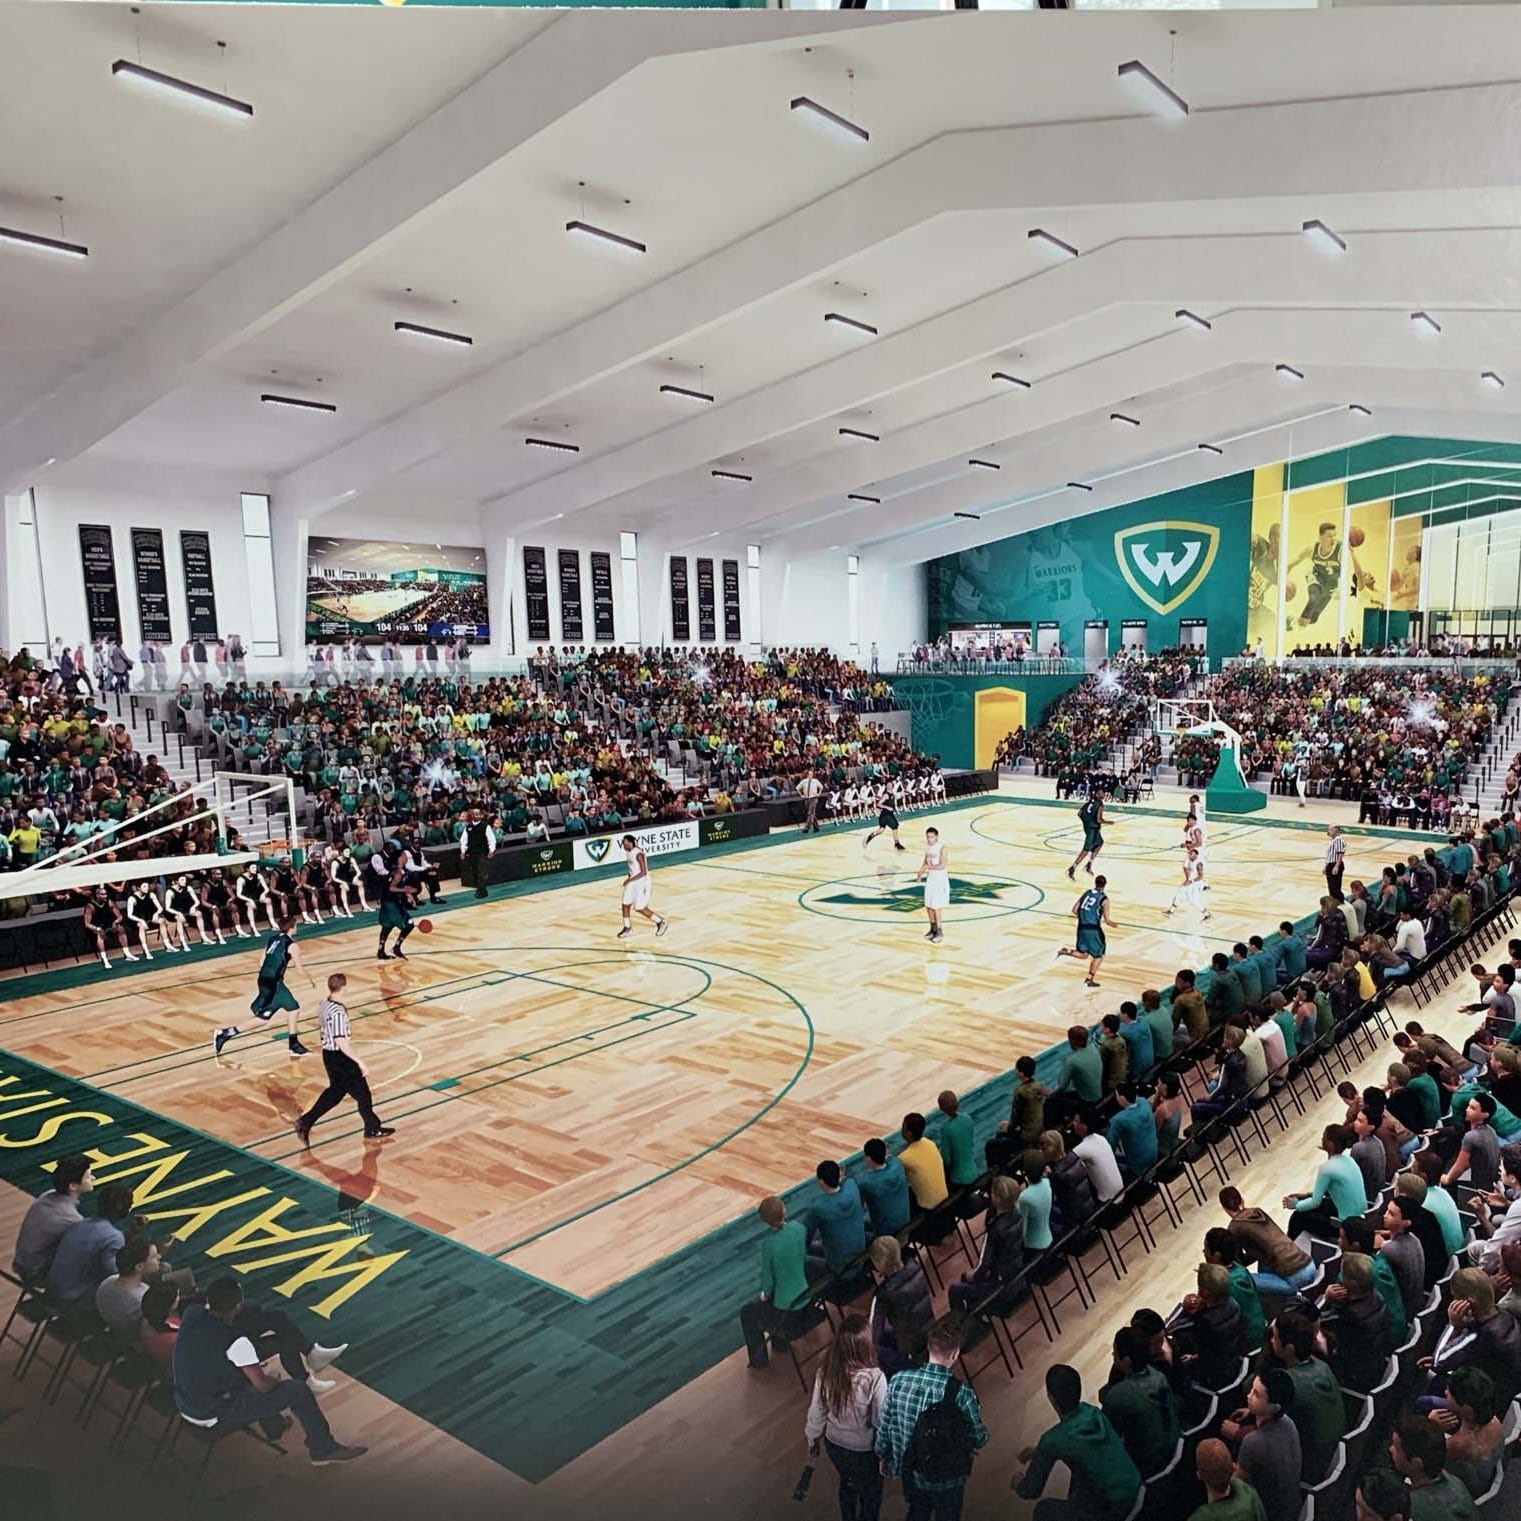 'Game-changer': Wayne State to build $25M athletic facility, house Pistons' G-League team